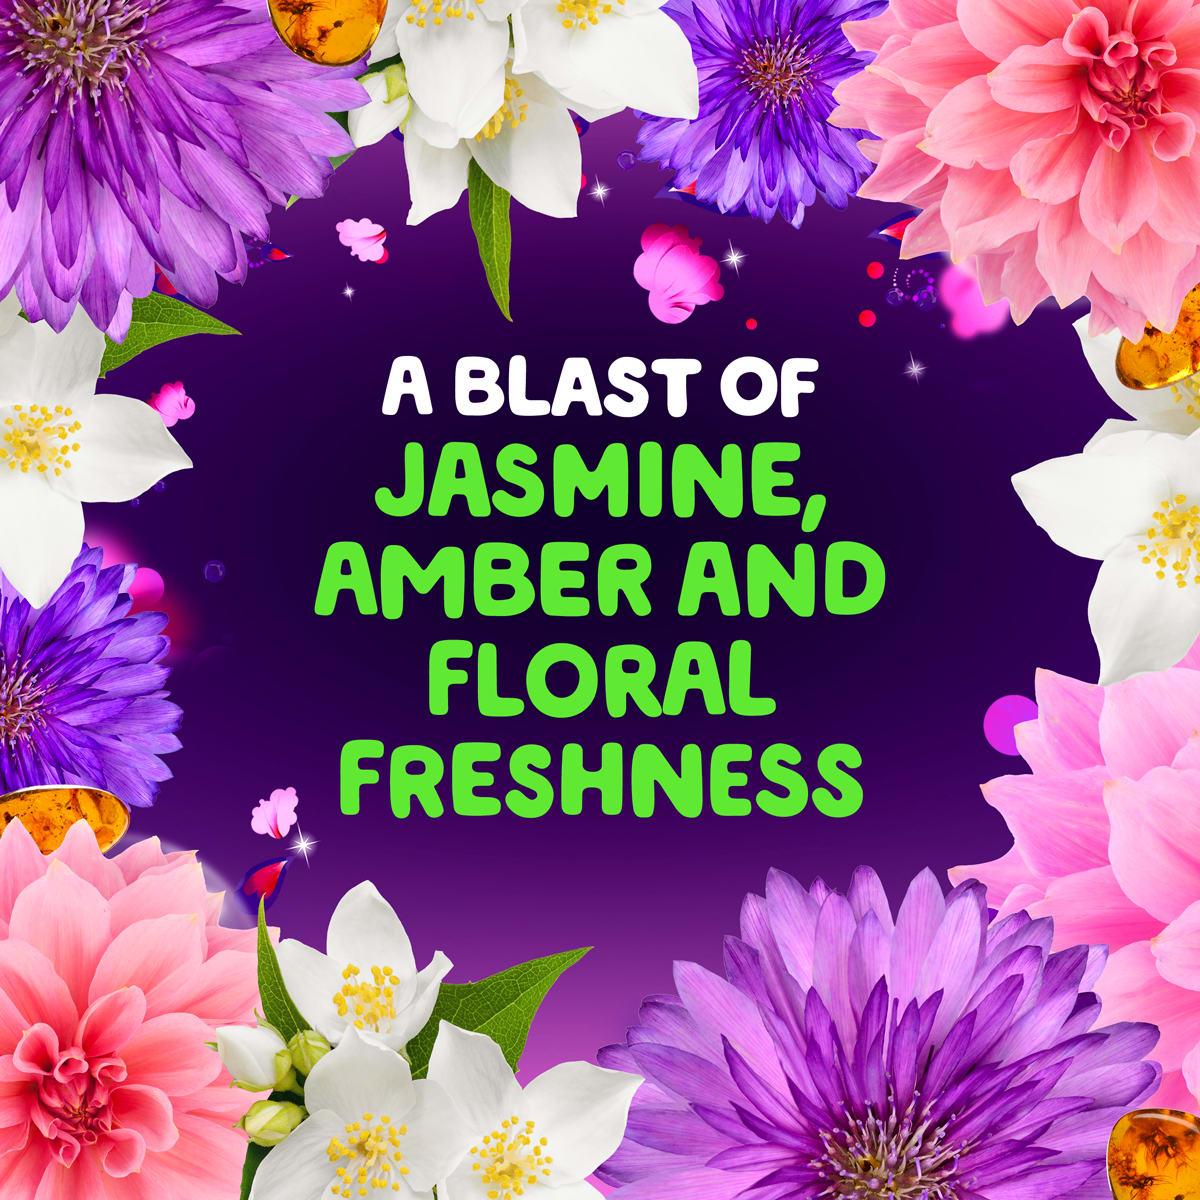 A blast of jasmine, amber and floral freshness (flowers)